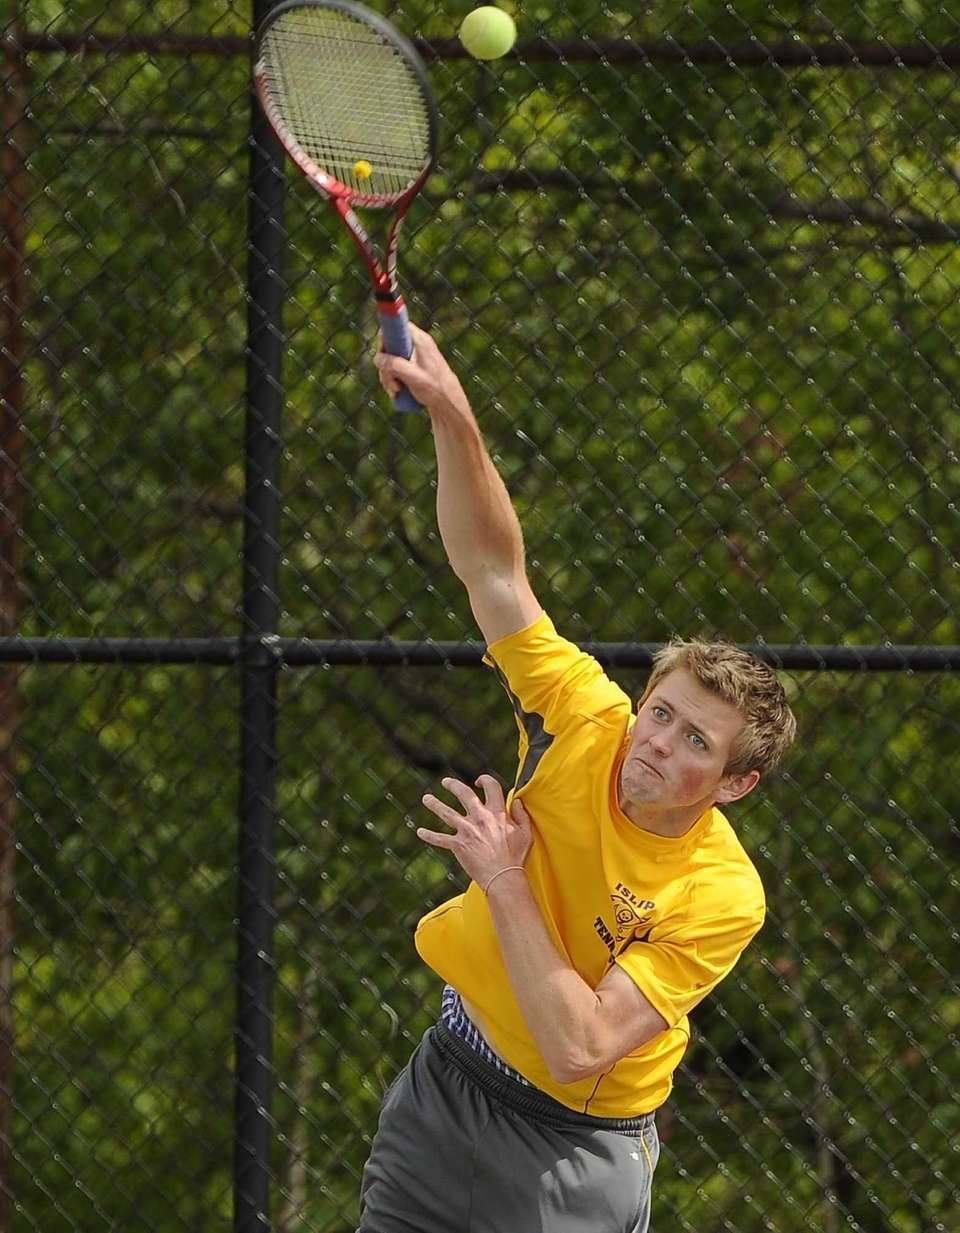 Islip's Connor Jeran serves during the consolation doubles